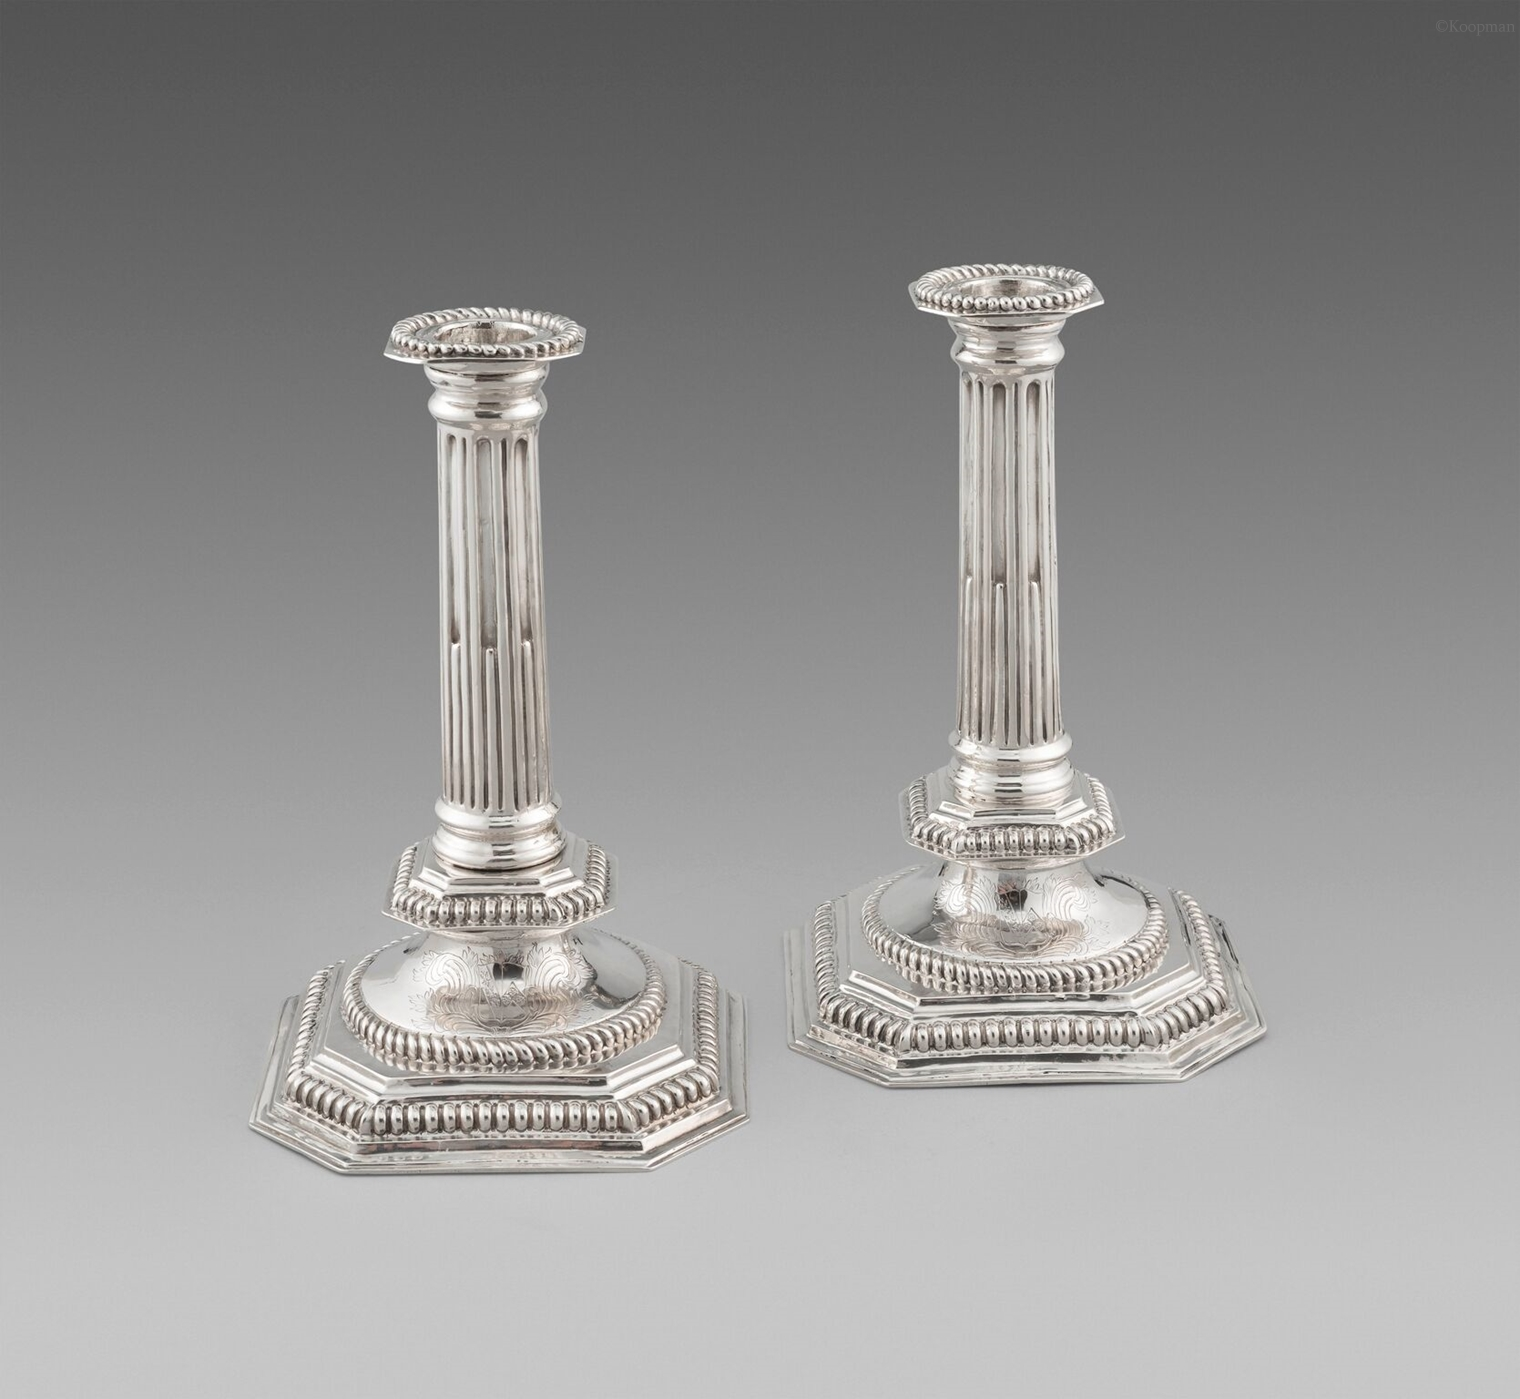 An Exceptional Pair of William & Mary Candlesticks